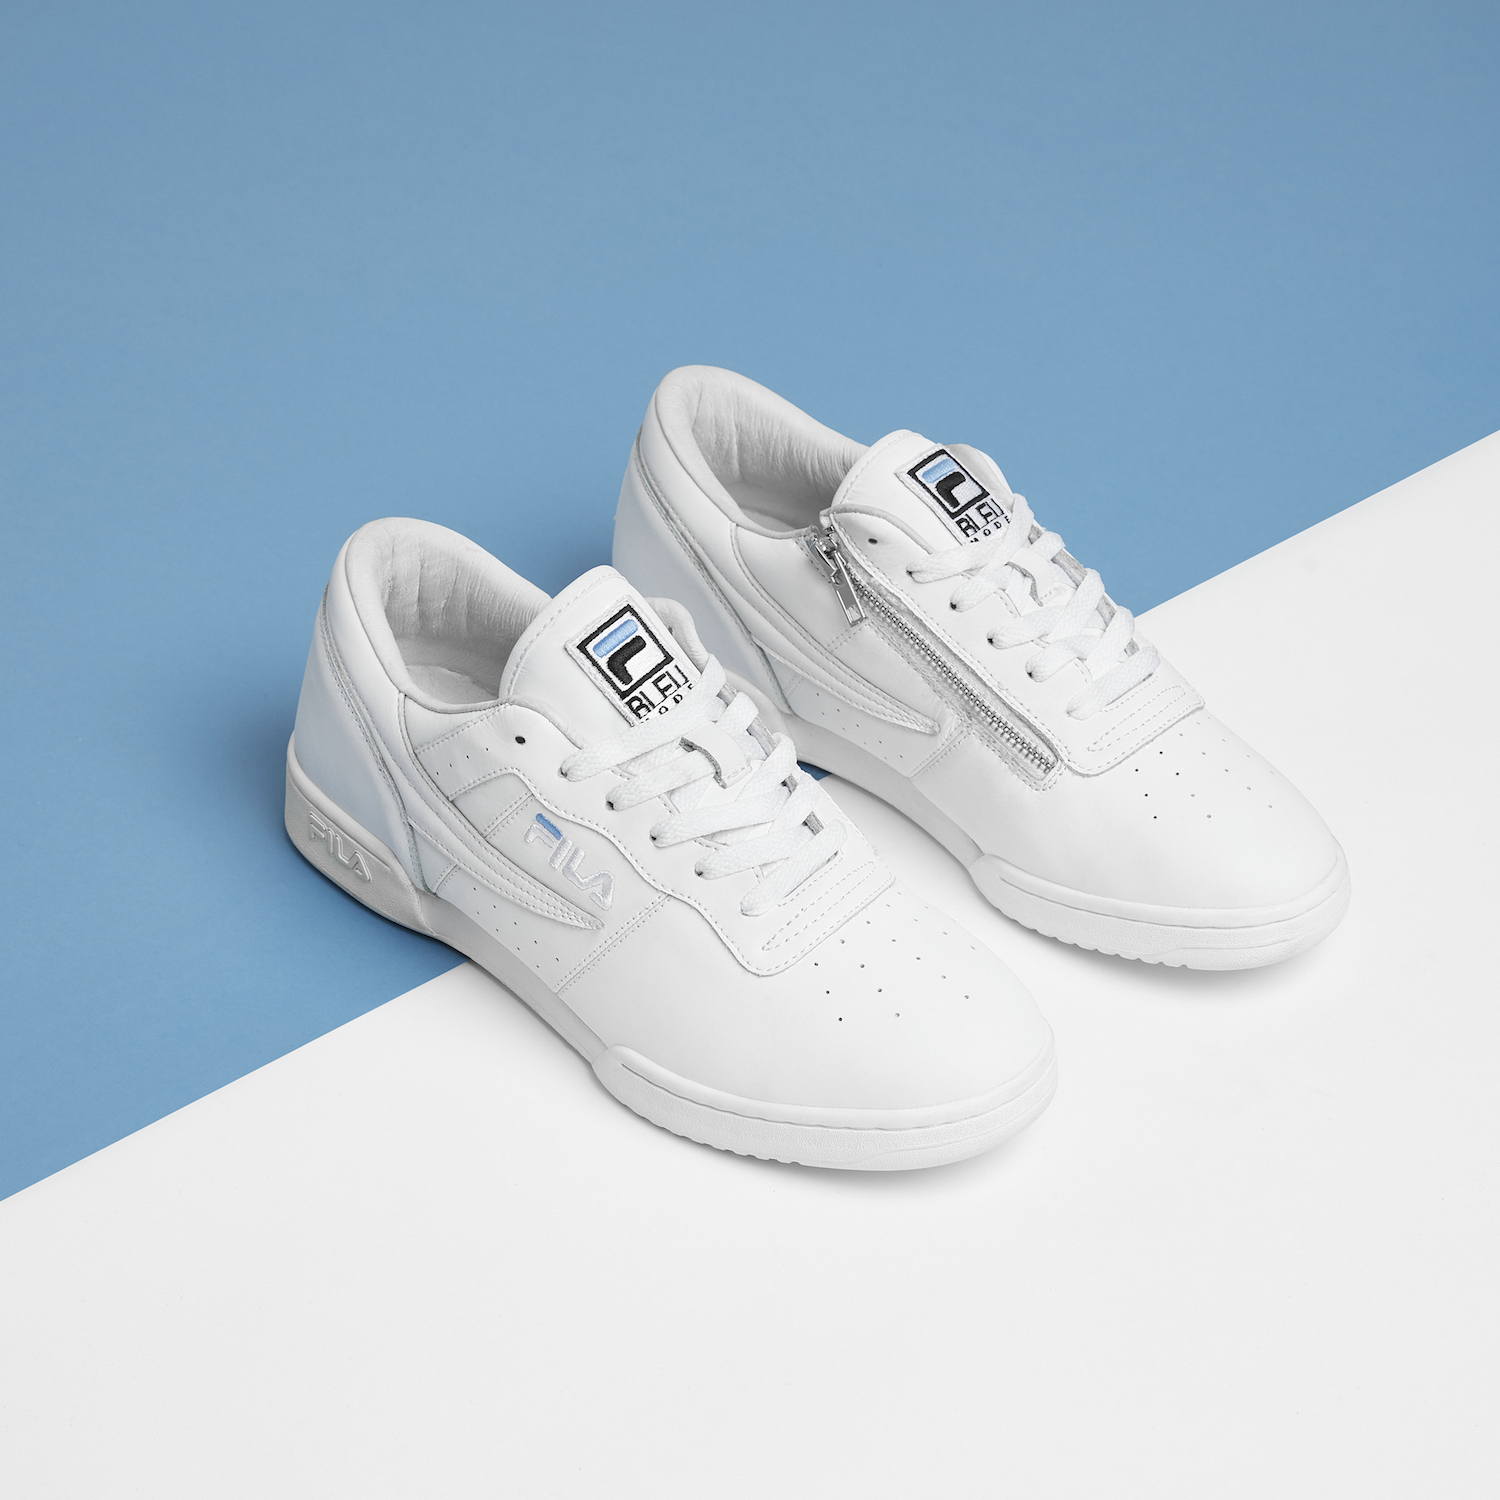 Fila Original Fitness Zipper X Bleu Mode 1